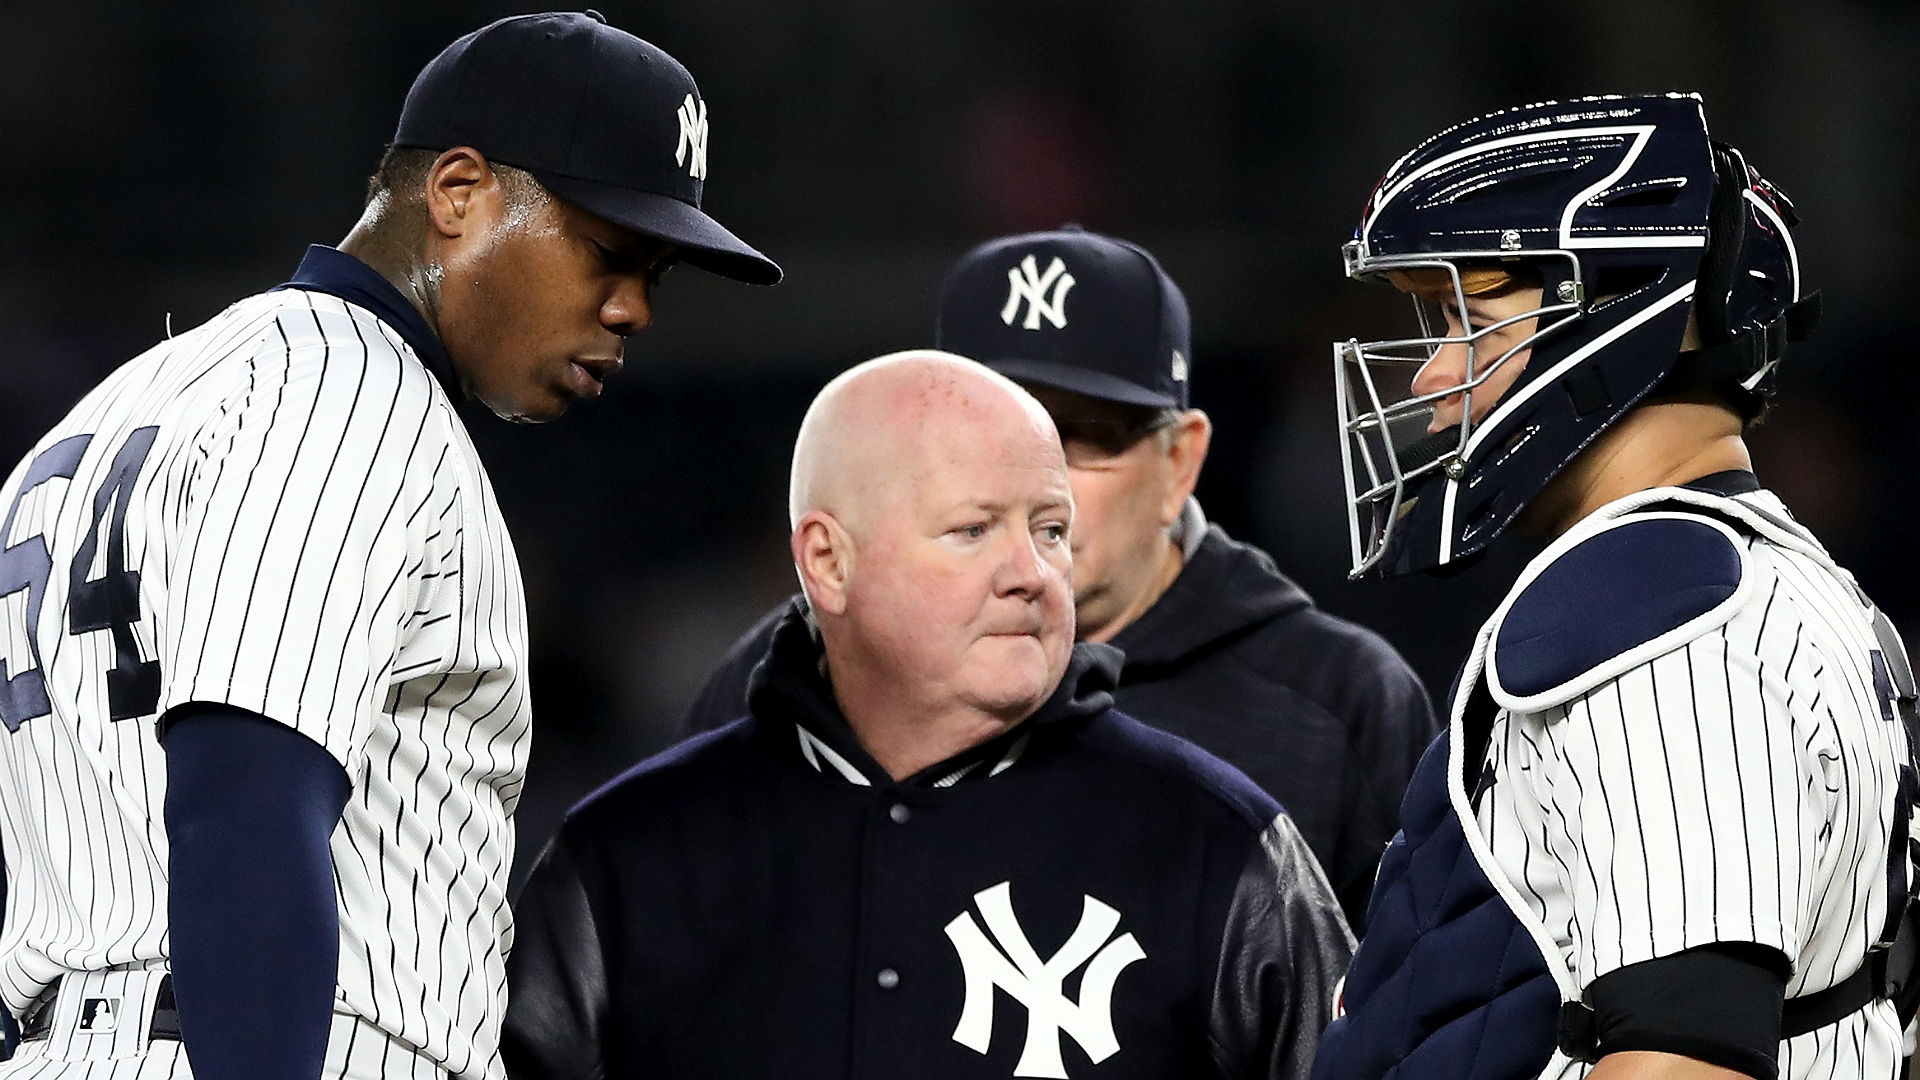 Yankees put Chapman on DL with rotator cuff inflammation